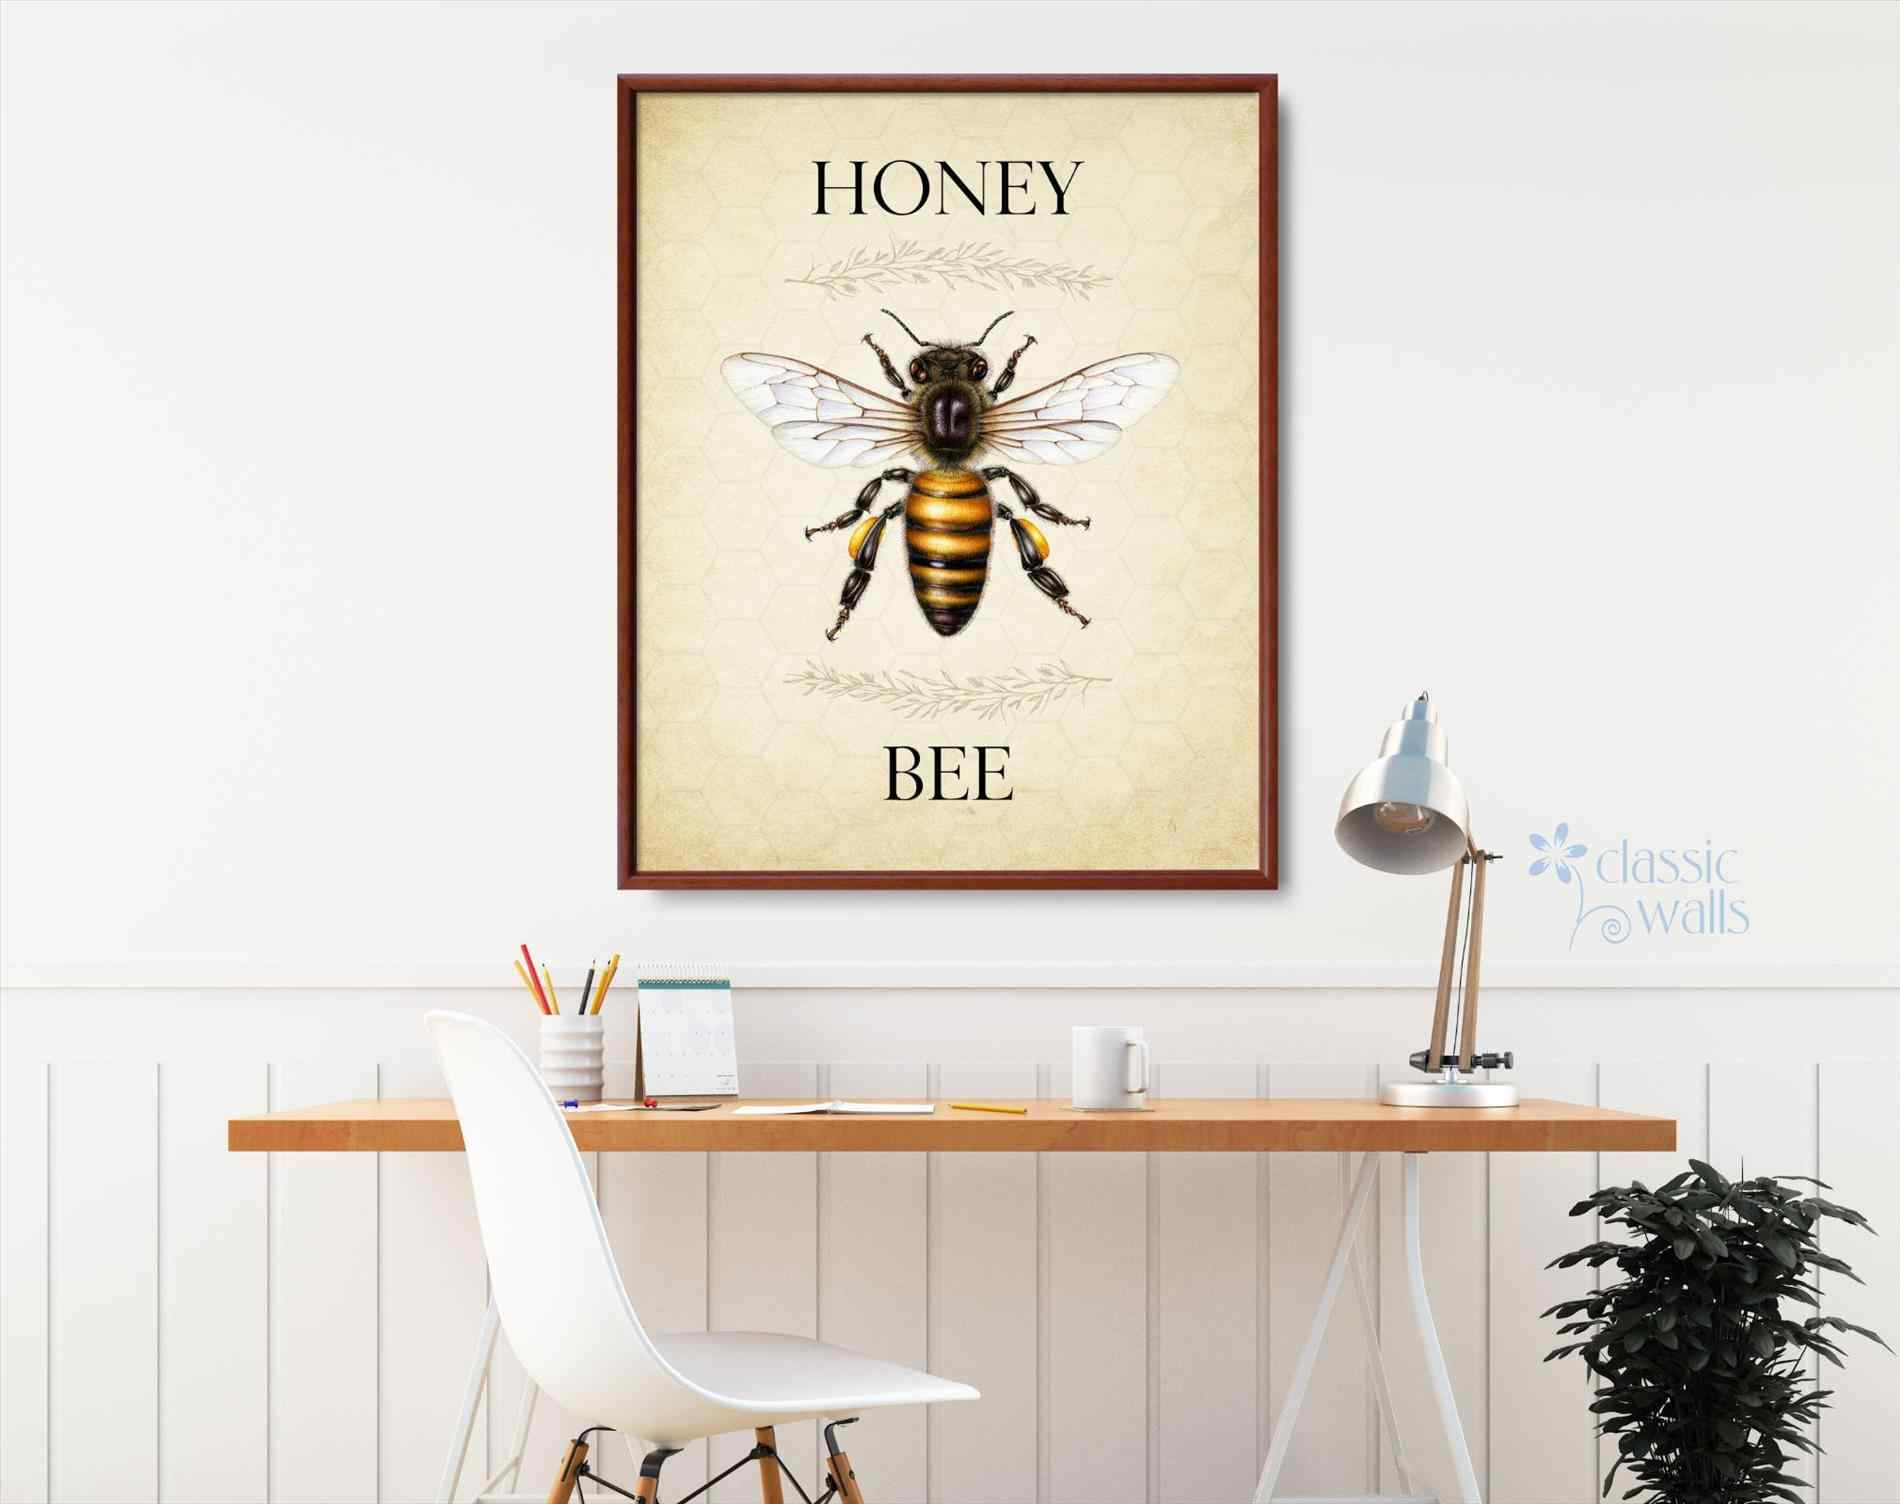 Best ideas about Bee Kitchen Decor . Save or Pin Honey Bee Kitchen Decor Now.